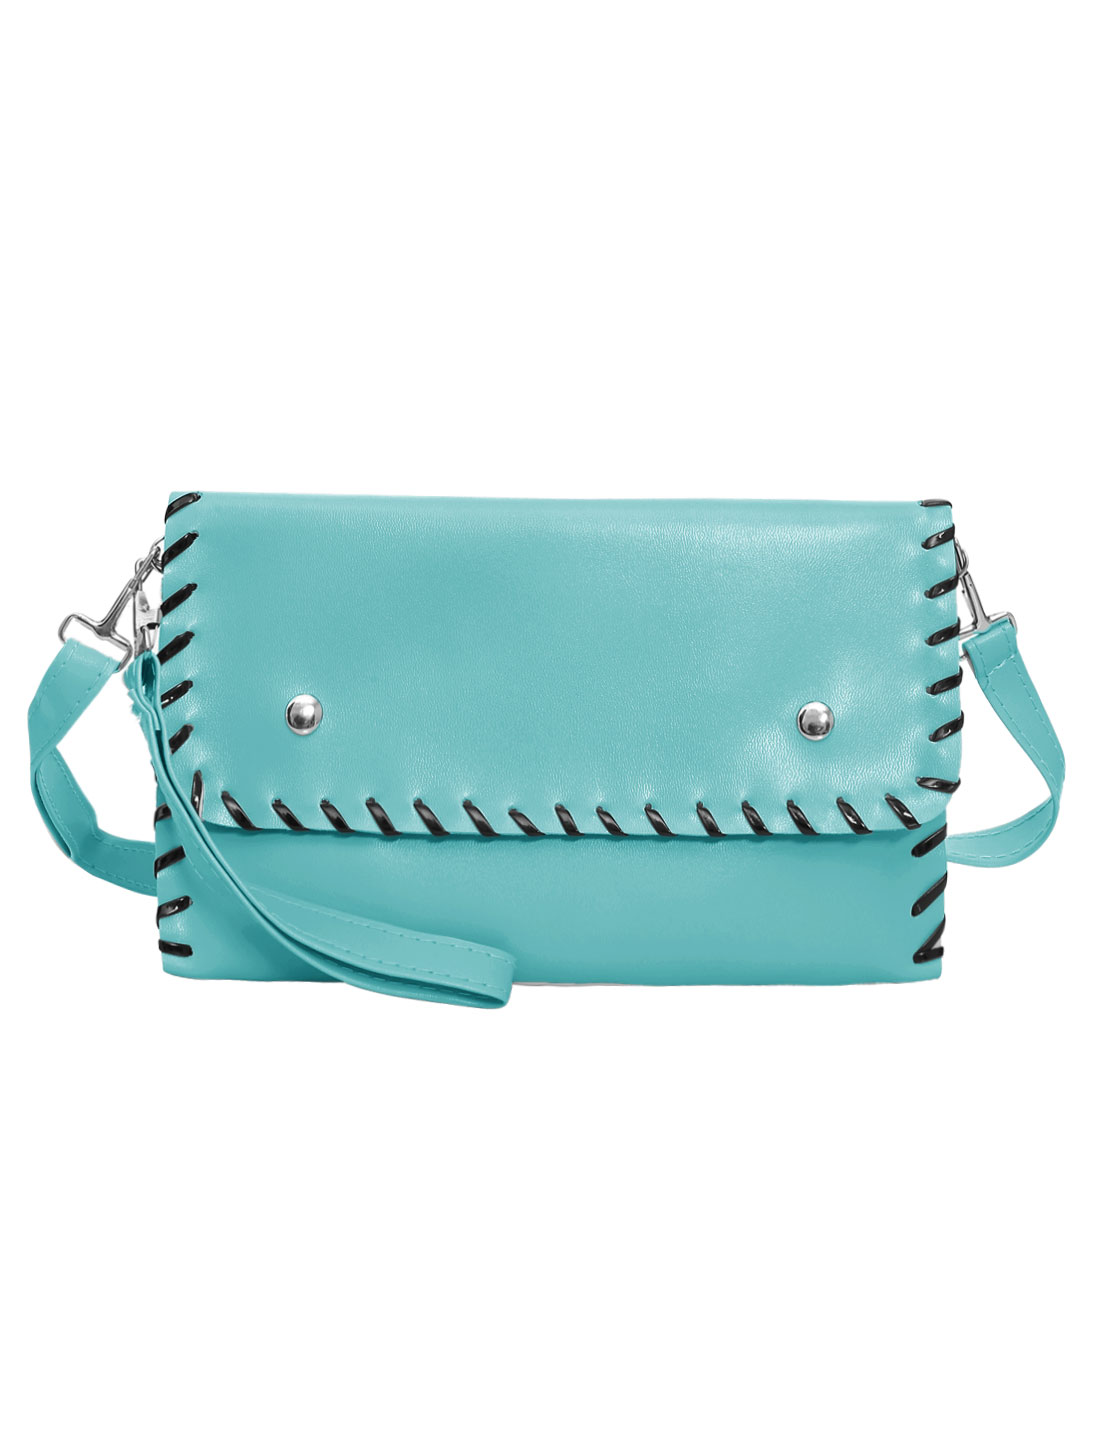 Woman Contrast-Colored Stitched Front Flap Fashion Clutch Bag Sky Blue